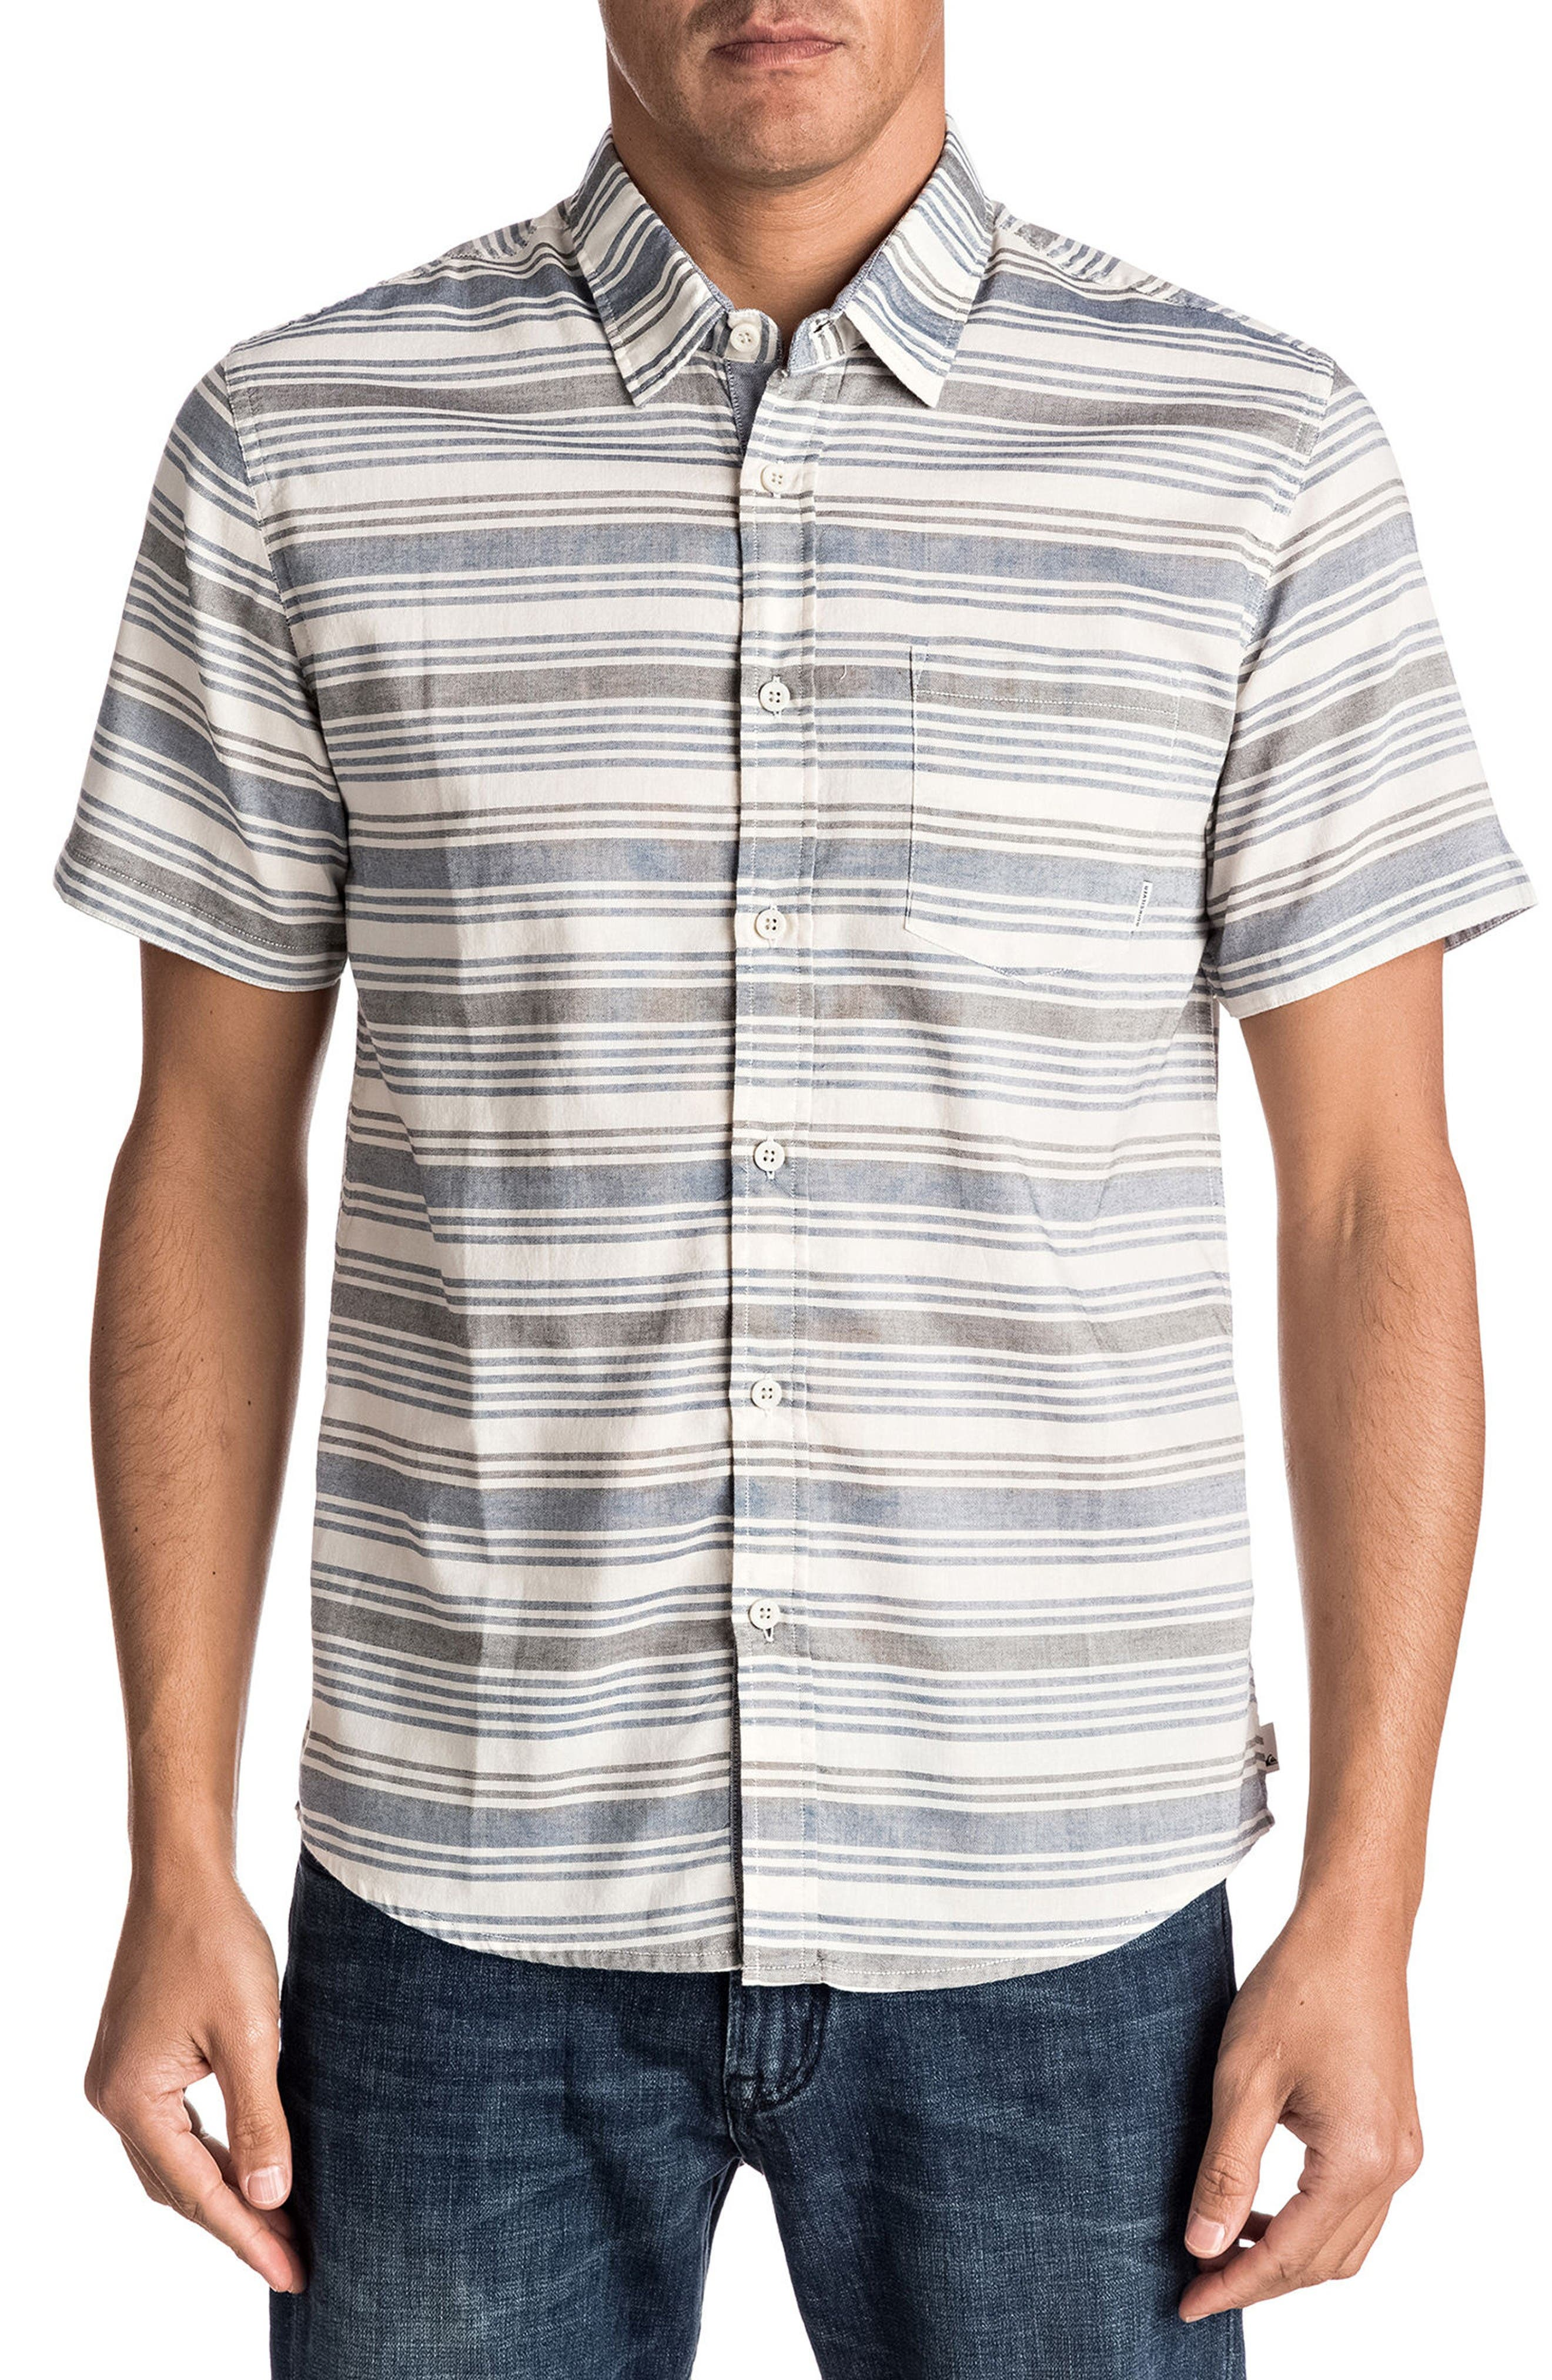 Main Image - Quiksilver Aventail Stripe Woven Shirt